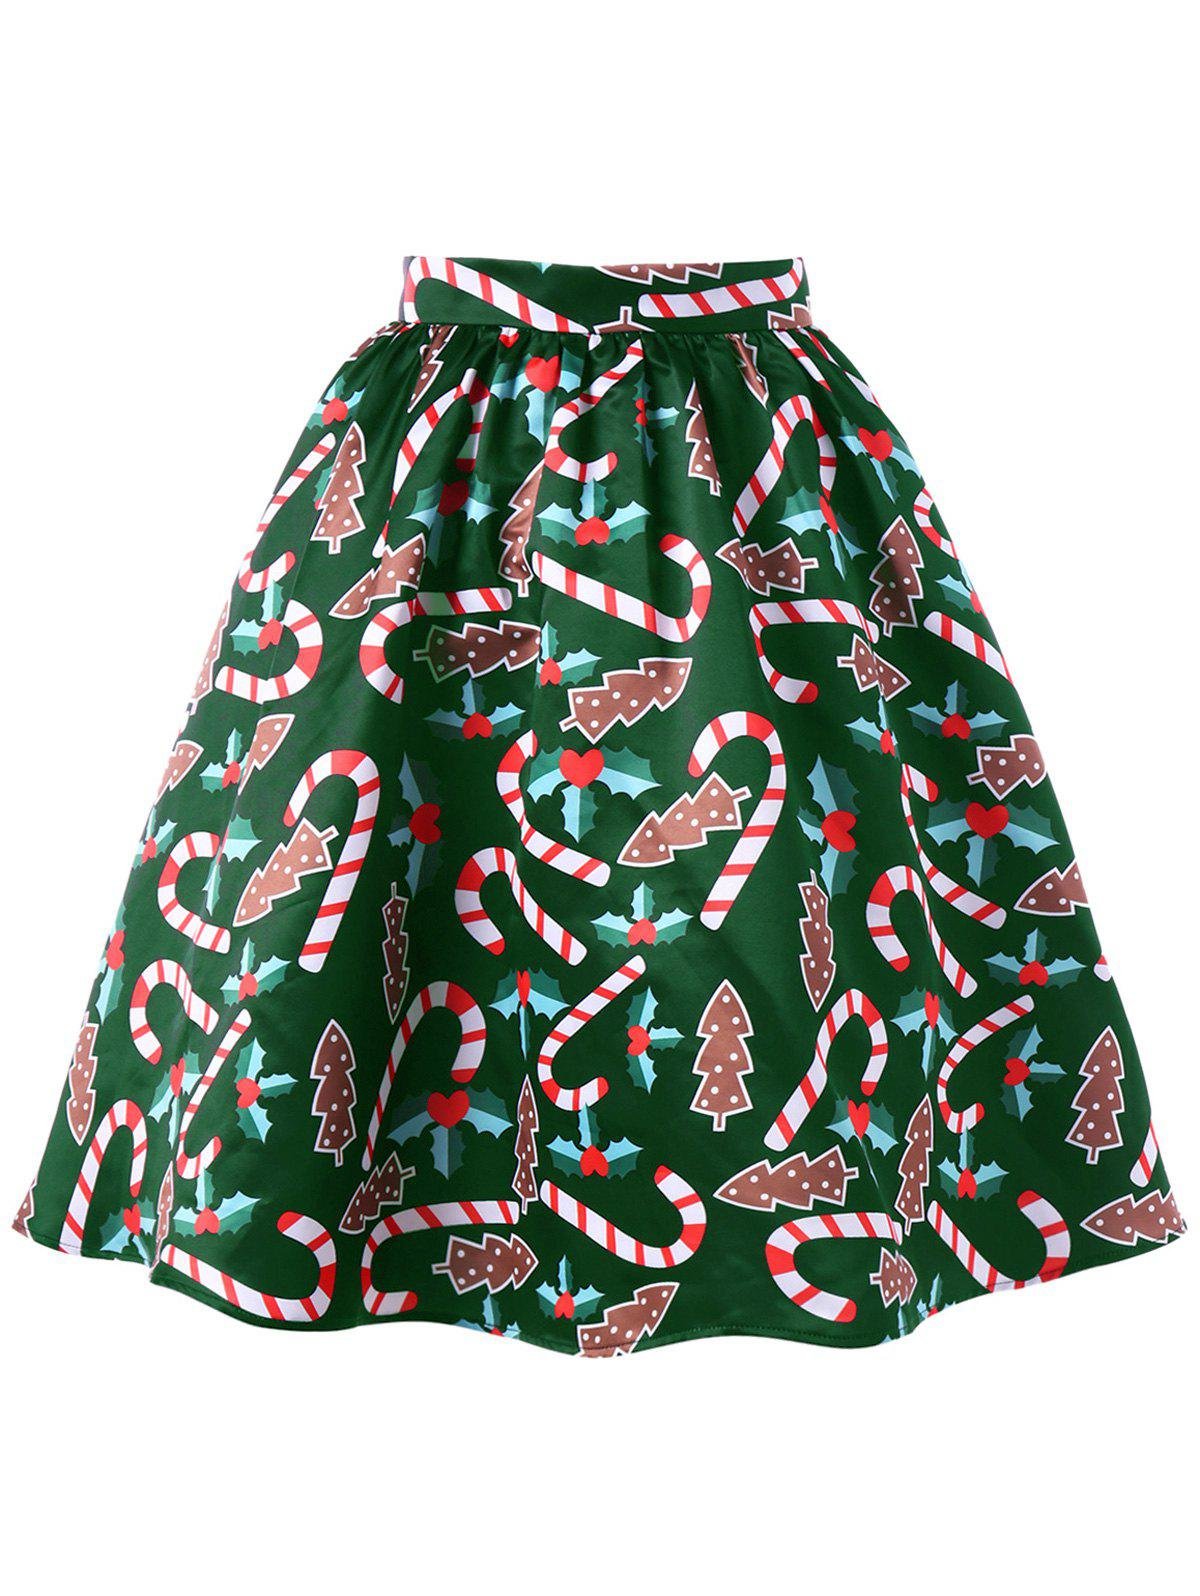 Christmas Graphic Flare SkirtWOMEN<br><br>Size: 2XL; Color: GREEN; Material: Polyester; Length: Knee-Length; Silhouette: A-Line; Pattern Type: Others; Season: Fall,Spring; Weight: 0.3300kg; Package Contents: 1 x Skirt;